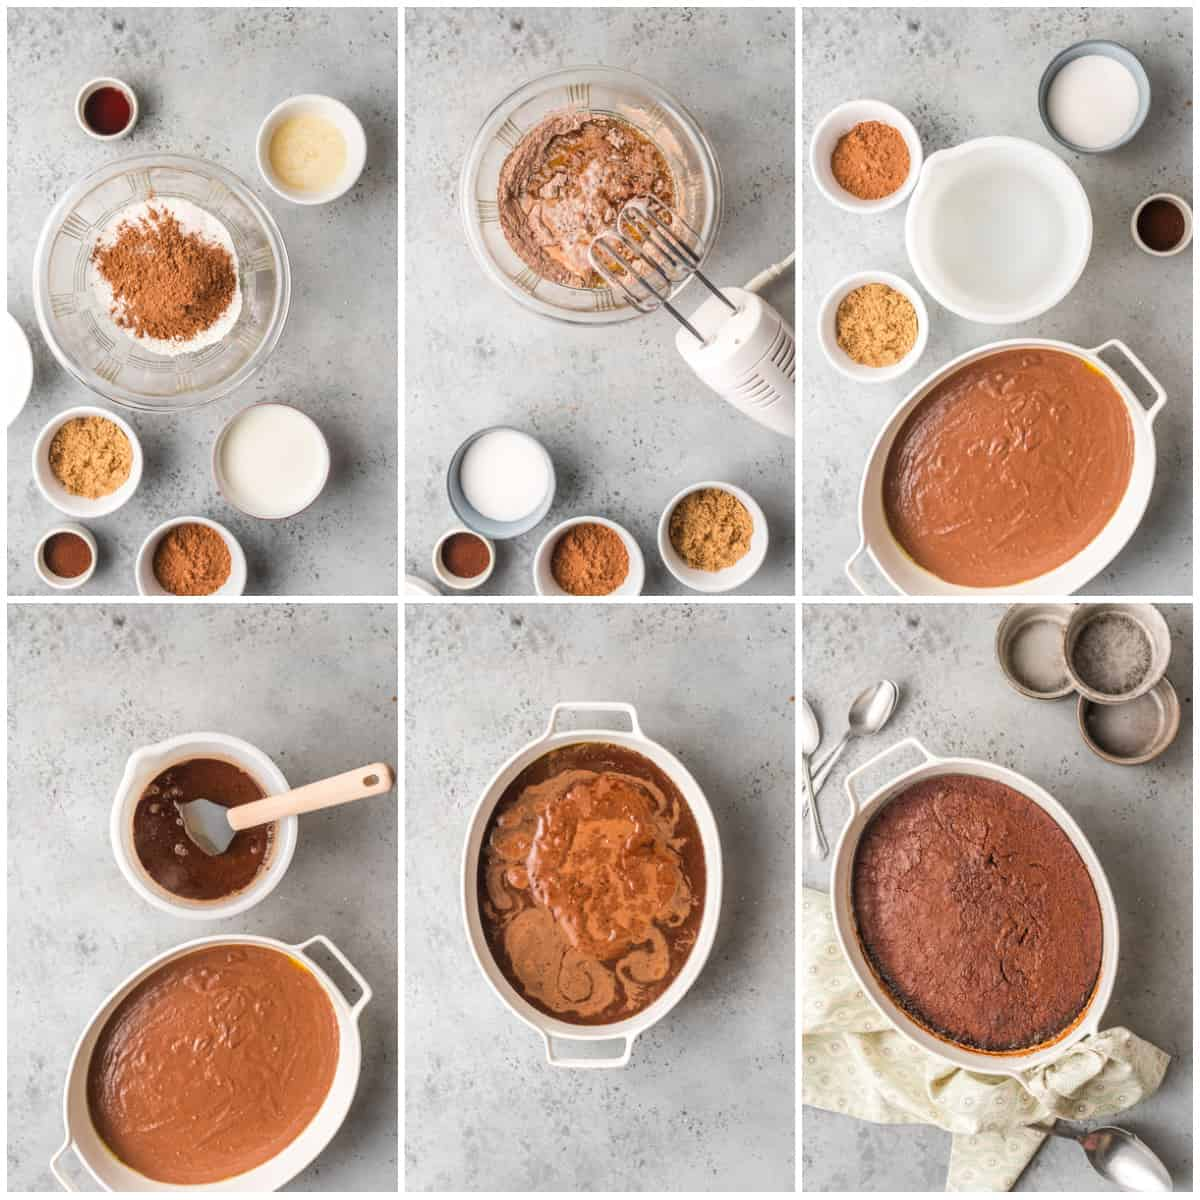 Step by step photos on how to make a Chocolate Pudding Cake